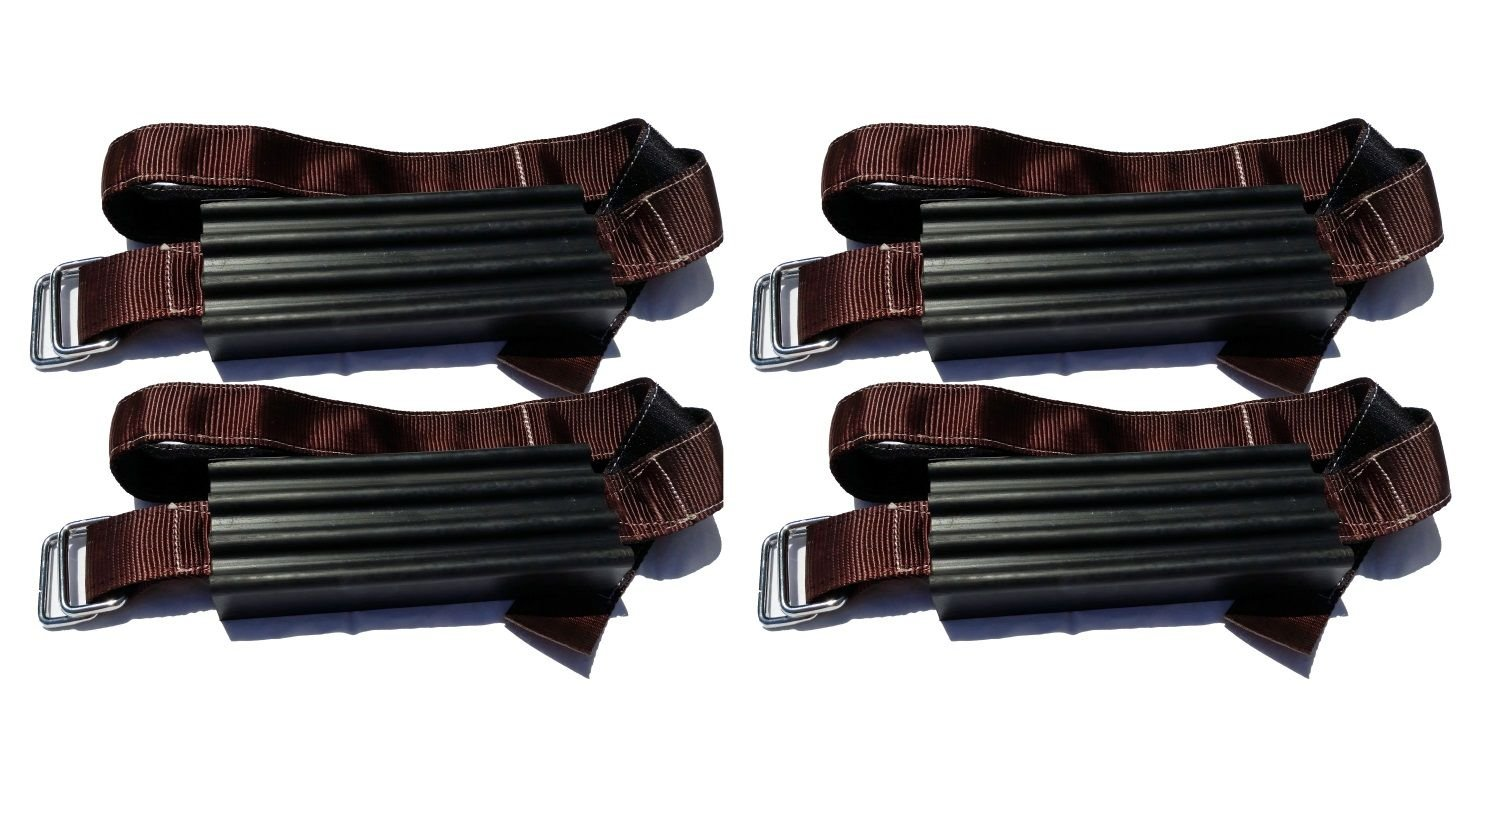 Easy Install Blocks Strap To Vehicle Tires TGOT01 Set of 2 A Chain // Snow Tire Alternative That Helps You Get Unstuck Trac-Grabber Mud and Sand Tire Traction Device for Oversize Trucks // SUVs Snow